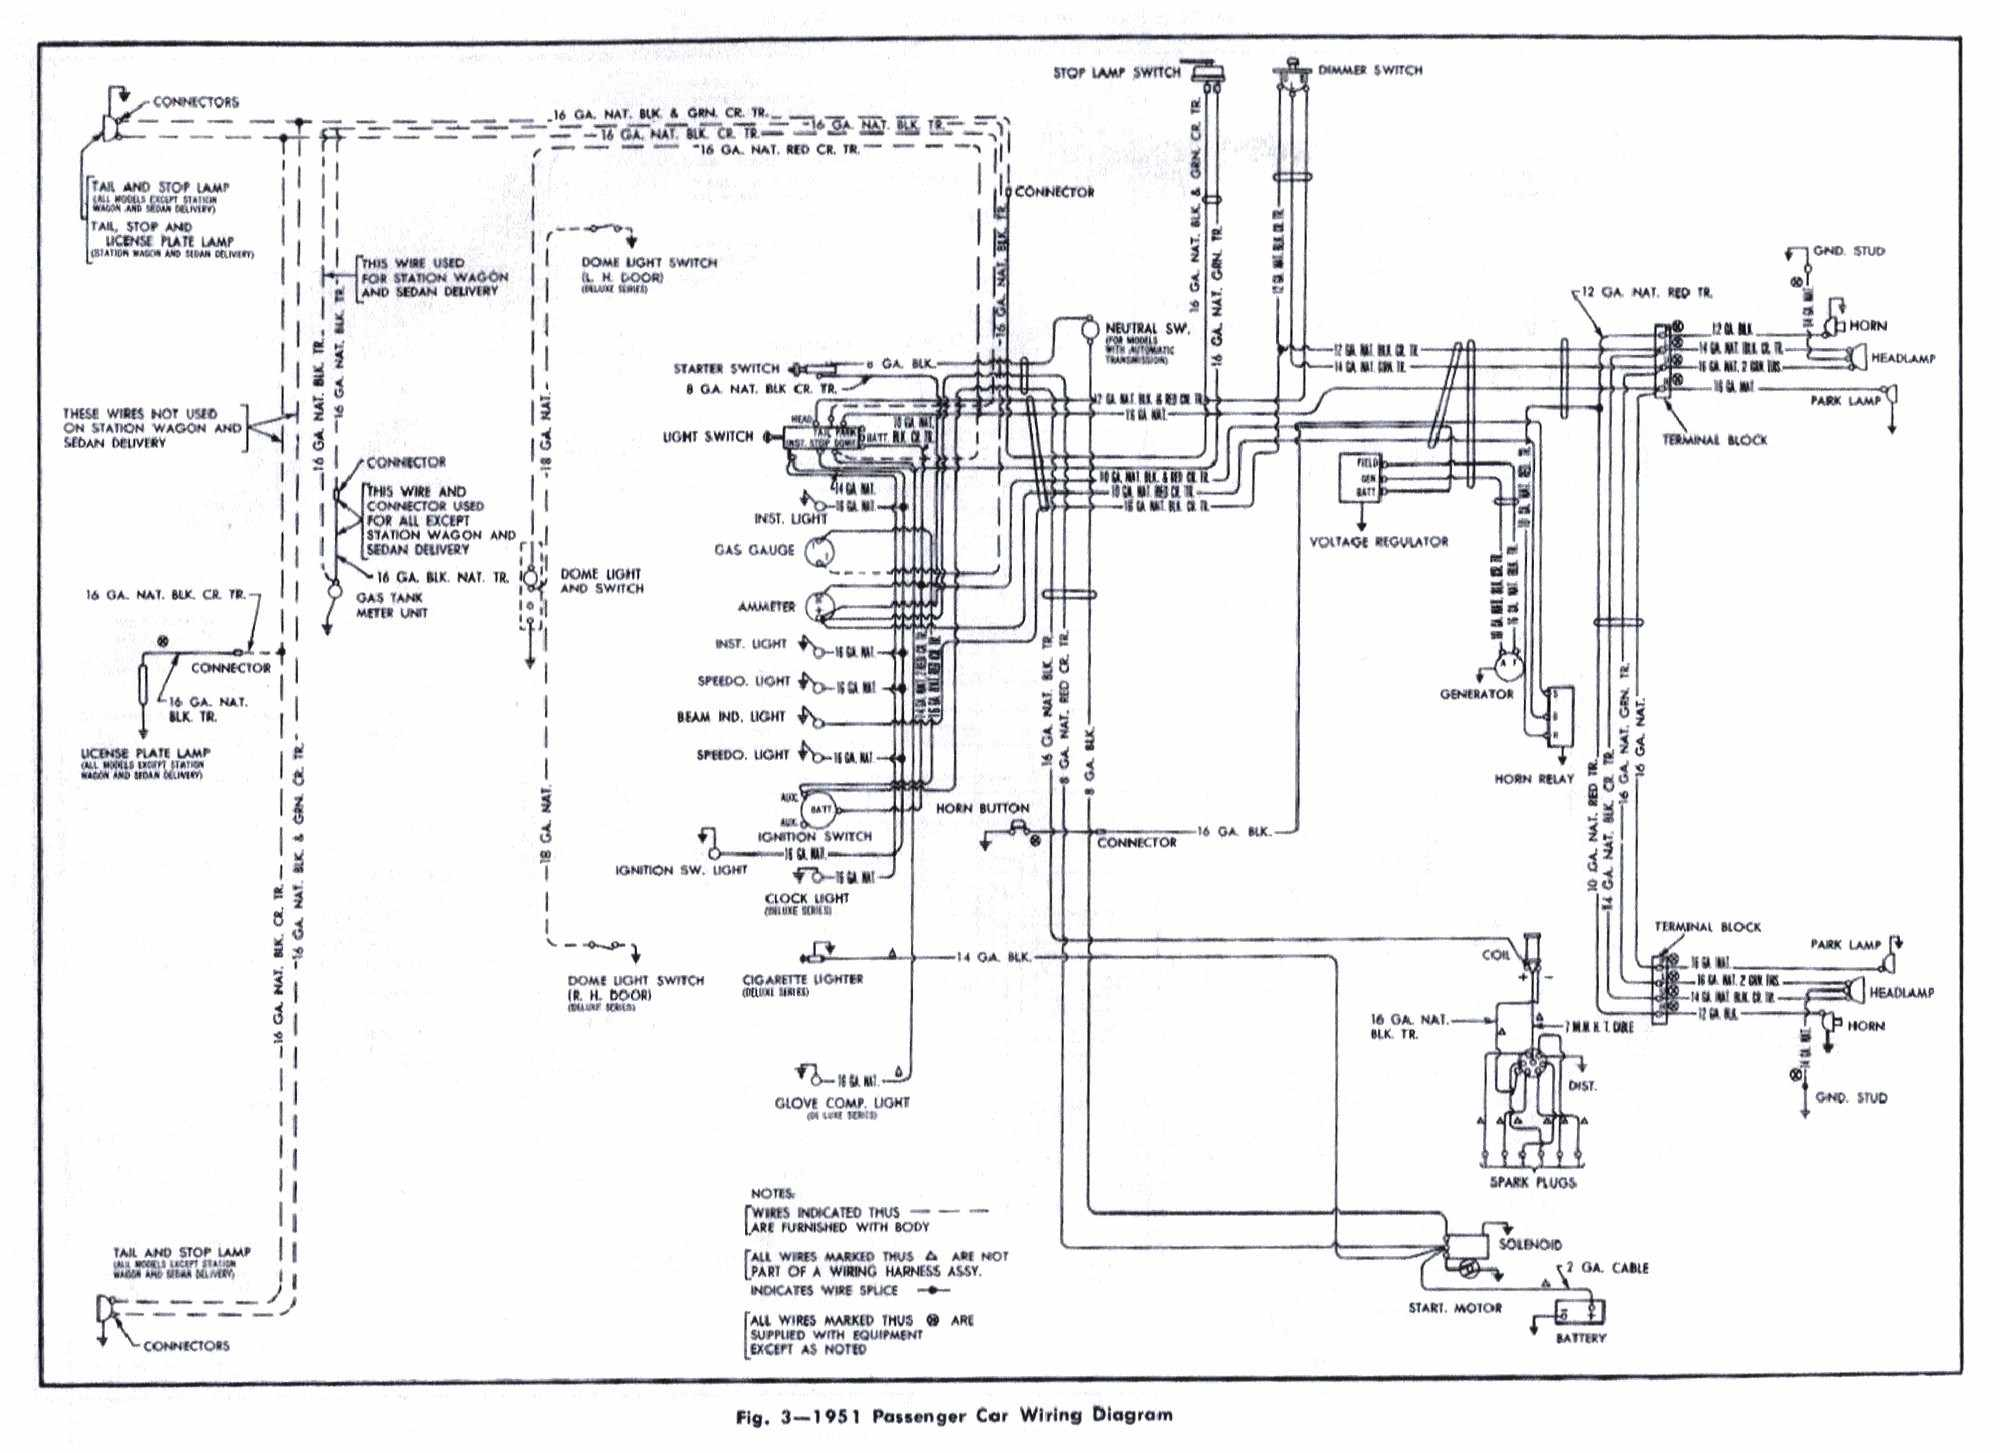 1968 olds 442 wiring diagram